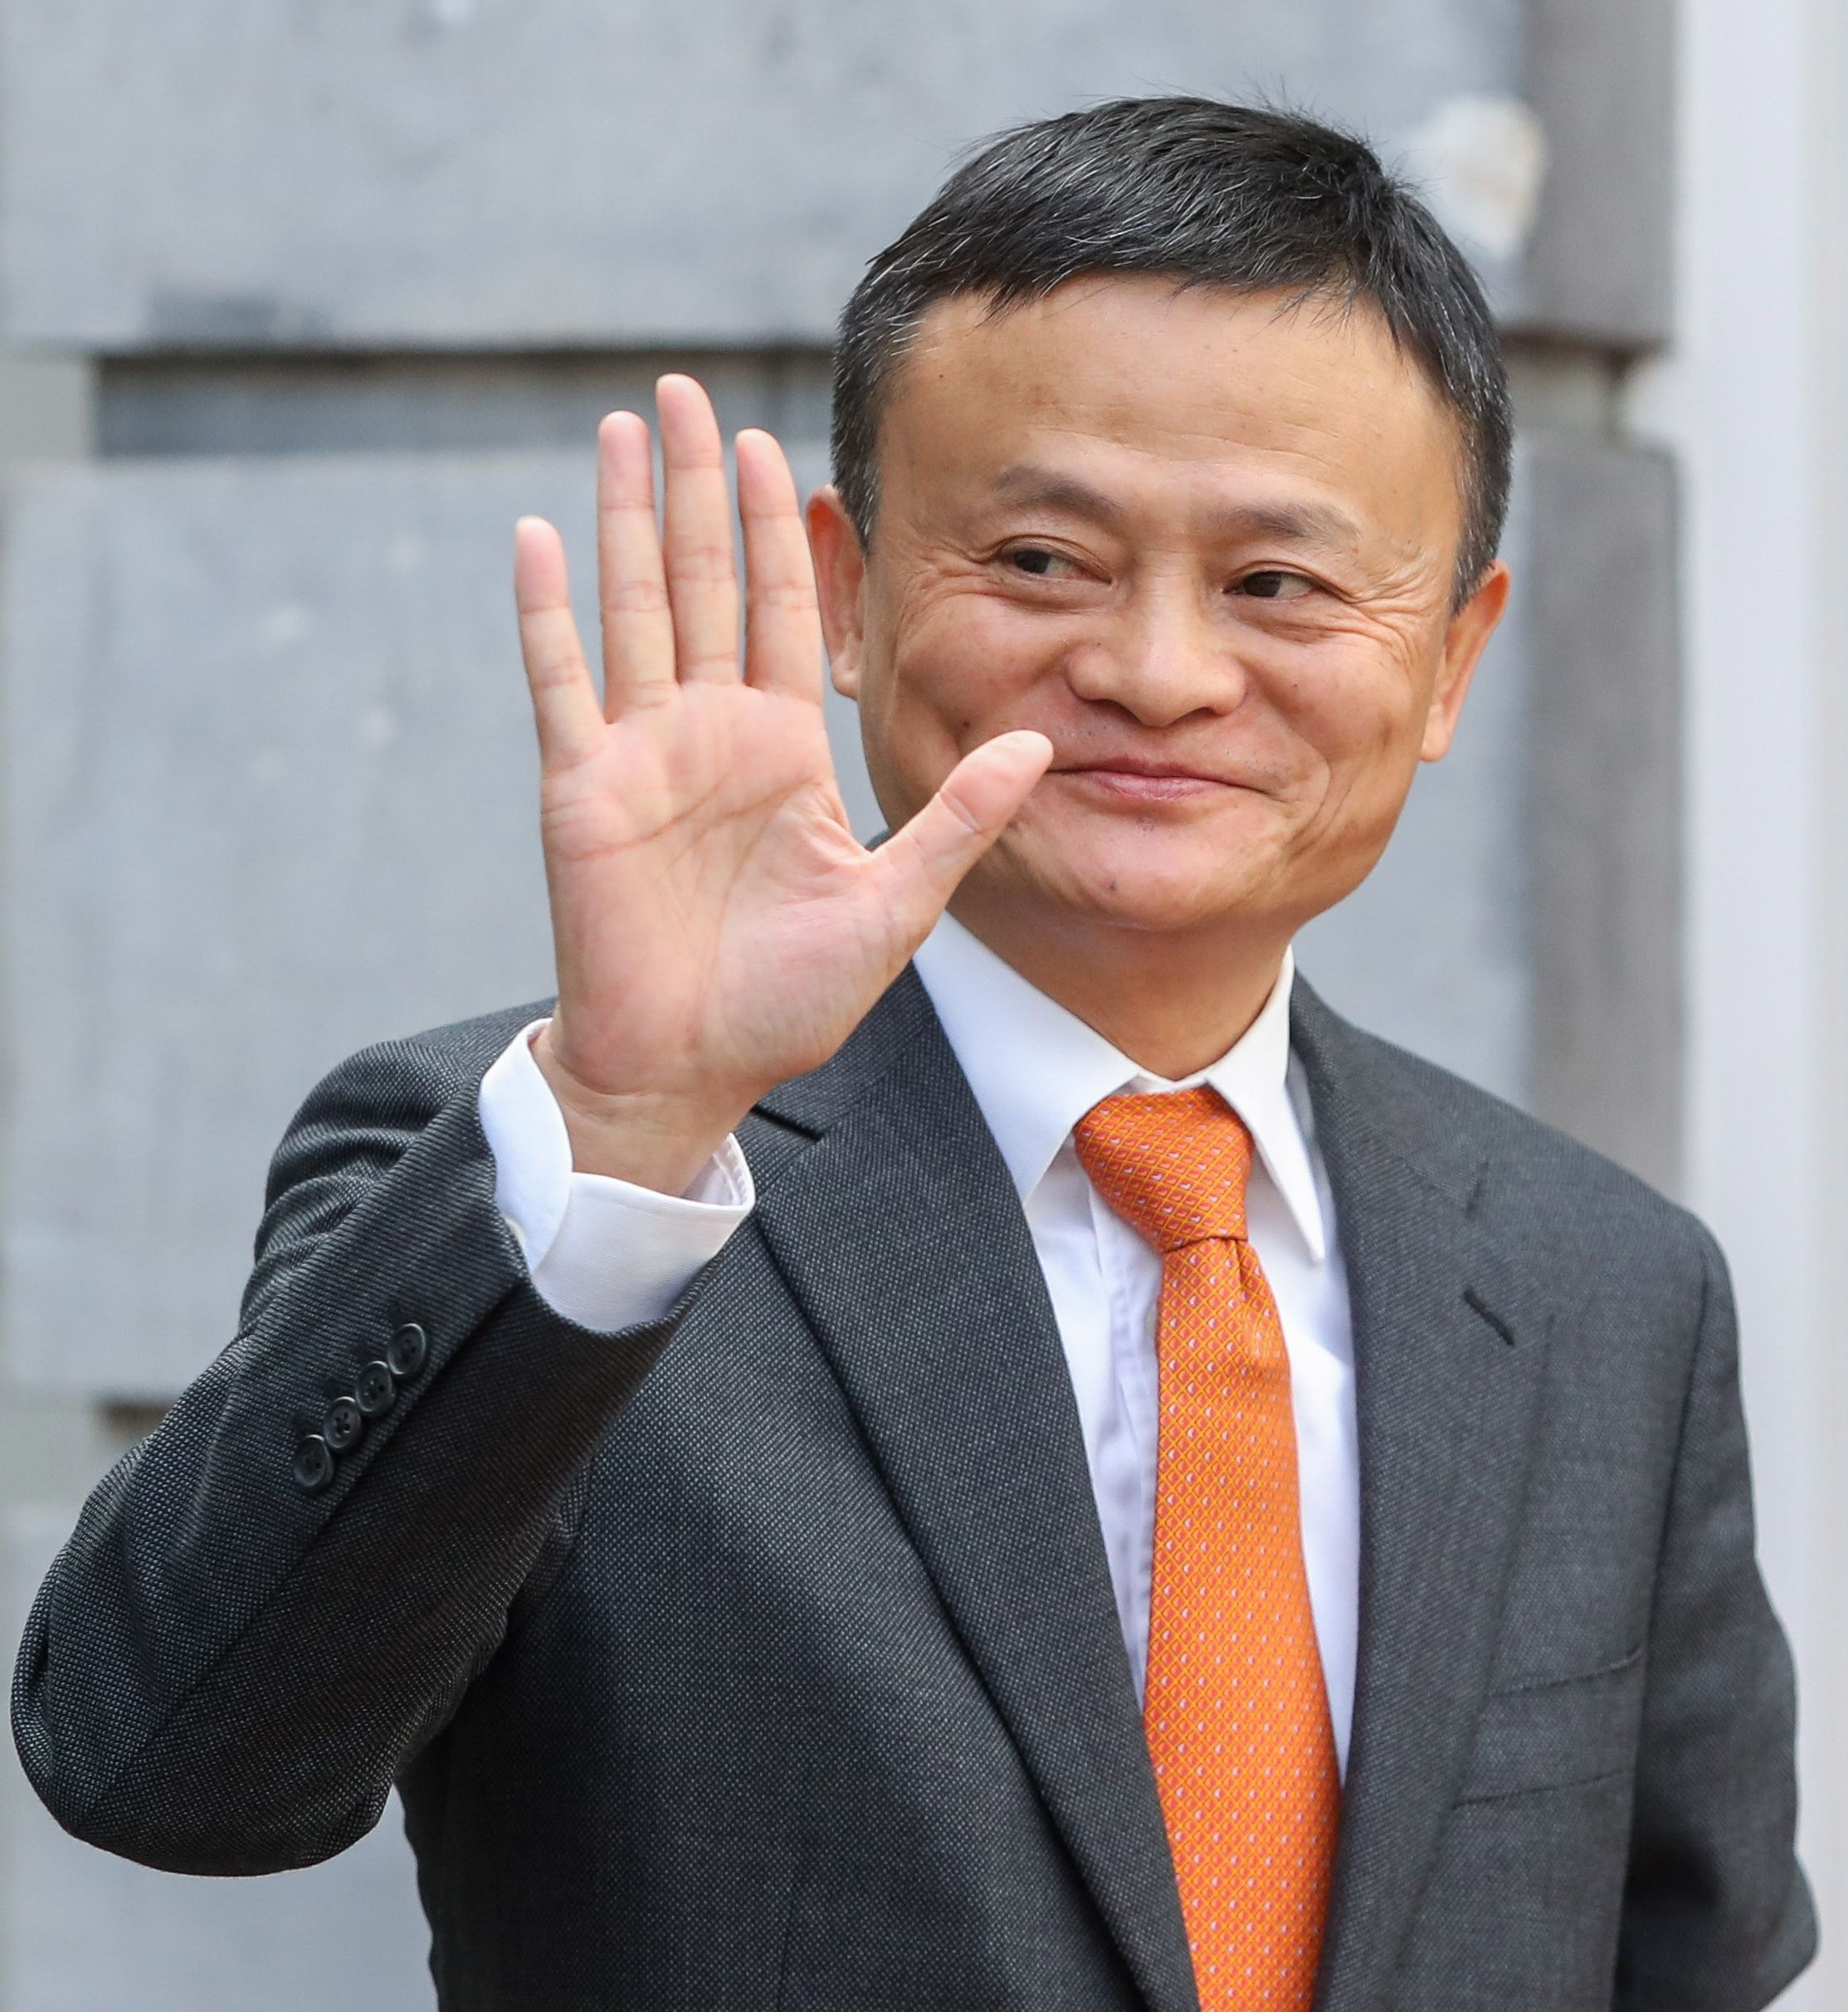 Jack Ma to step down as Alibaba chairman in September 2019